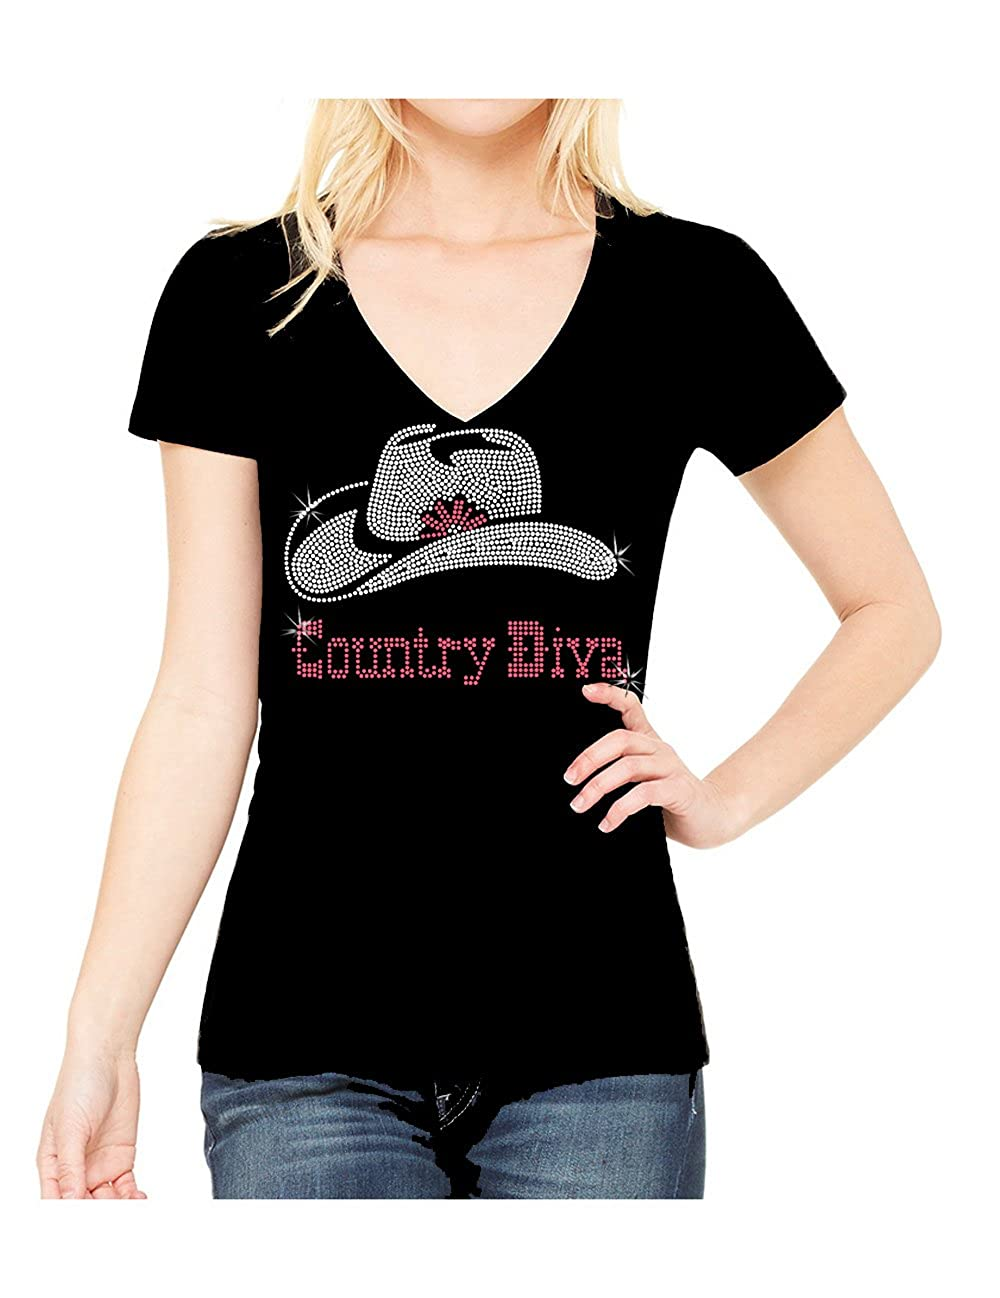 0b0e3ed78 Country Shirts Womens - Nils Stucki Kieferorthopäde